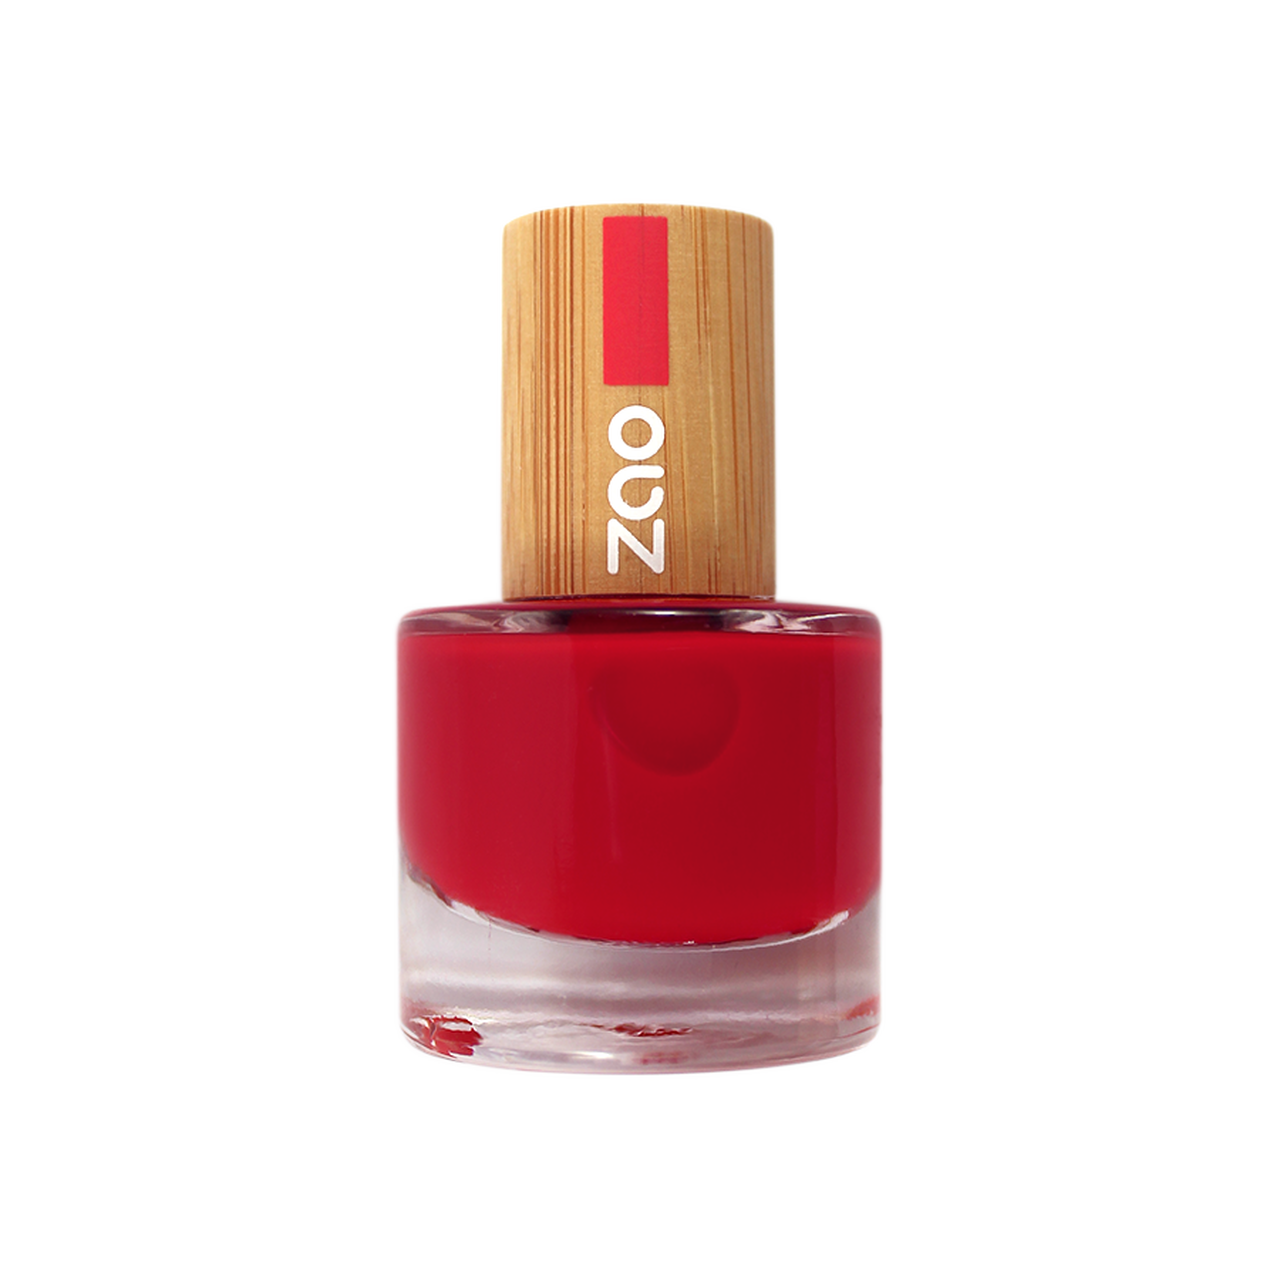 Red Nail Polish, Palm oil free, without any toxic ingredients - natoorio